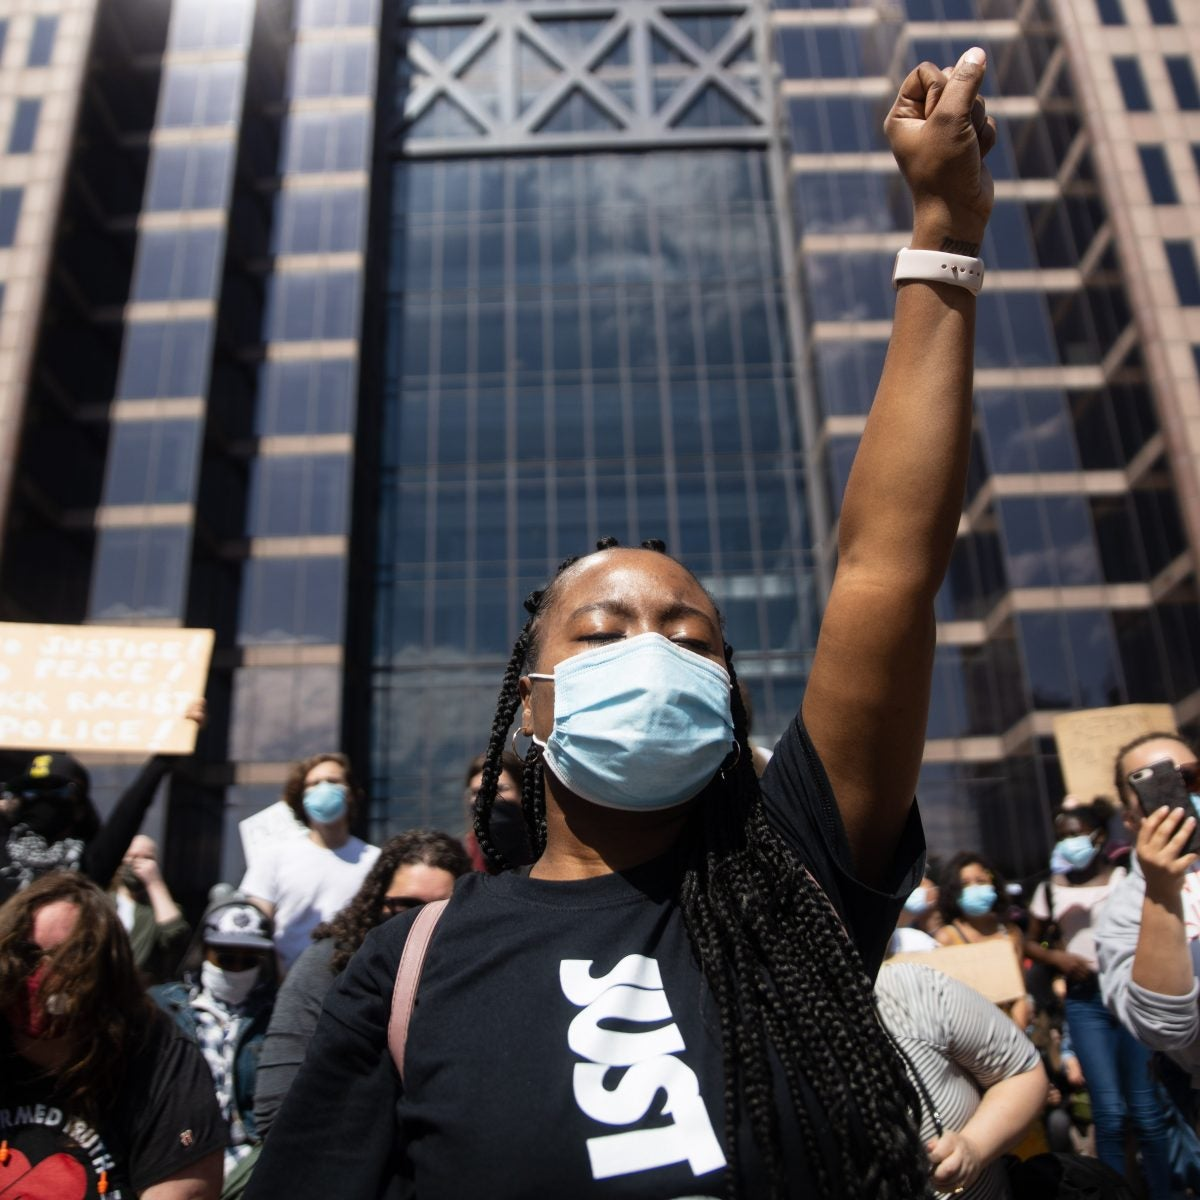 Live Updates: Protests Against Police Killings Spread Nationwide